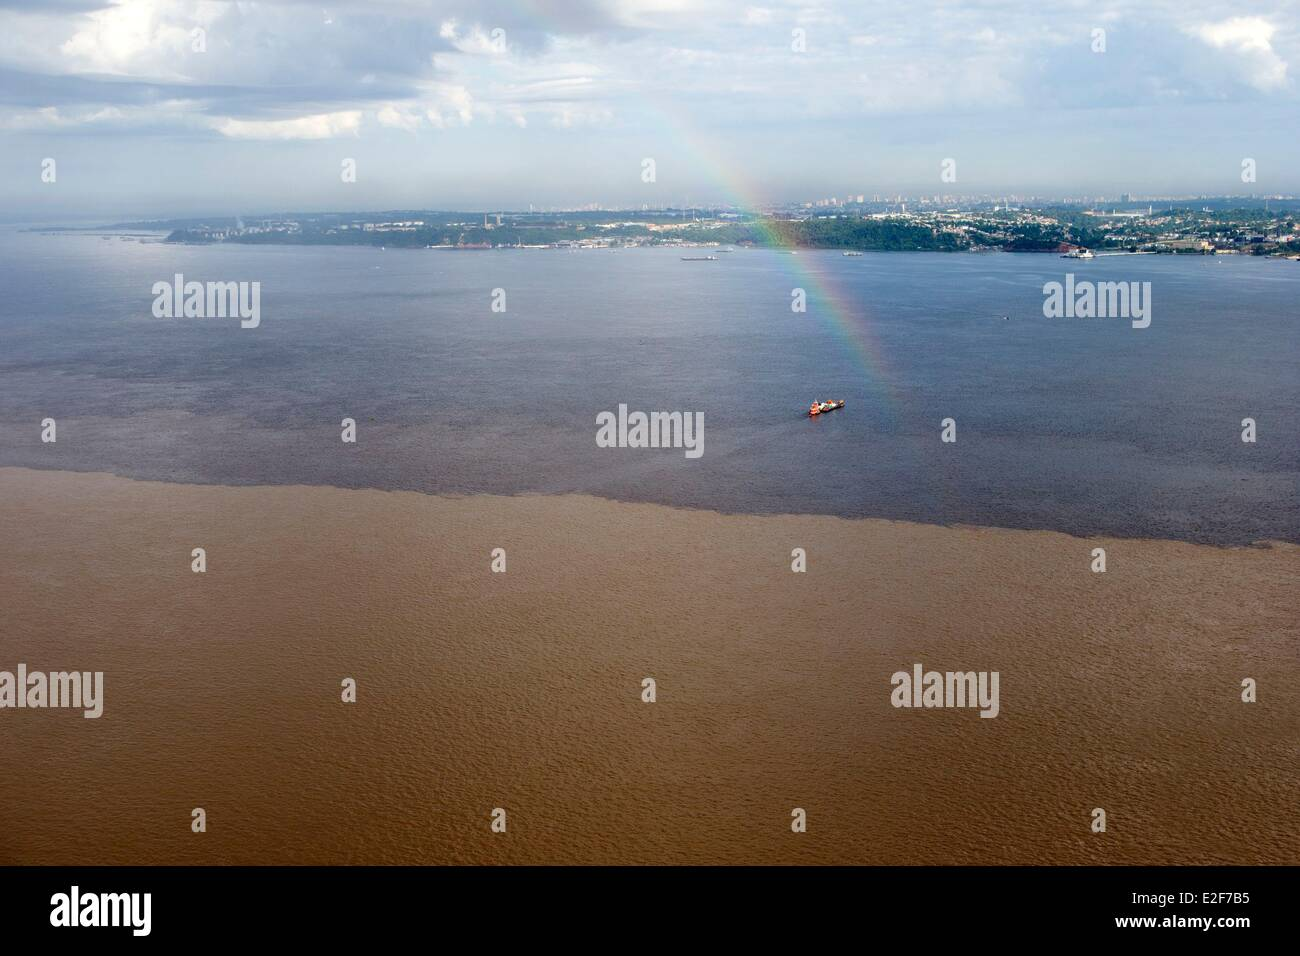 Brazil Amazonas State Amazon River phenomenon of the meeting of waters the black waters of the Rio Negro meet the - Stock Image